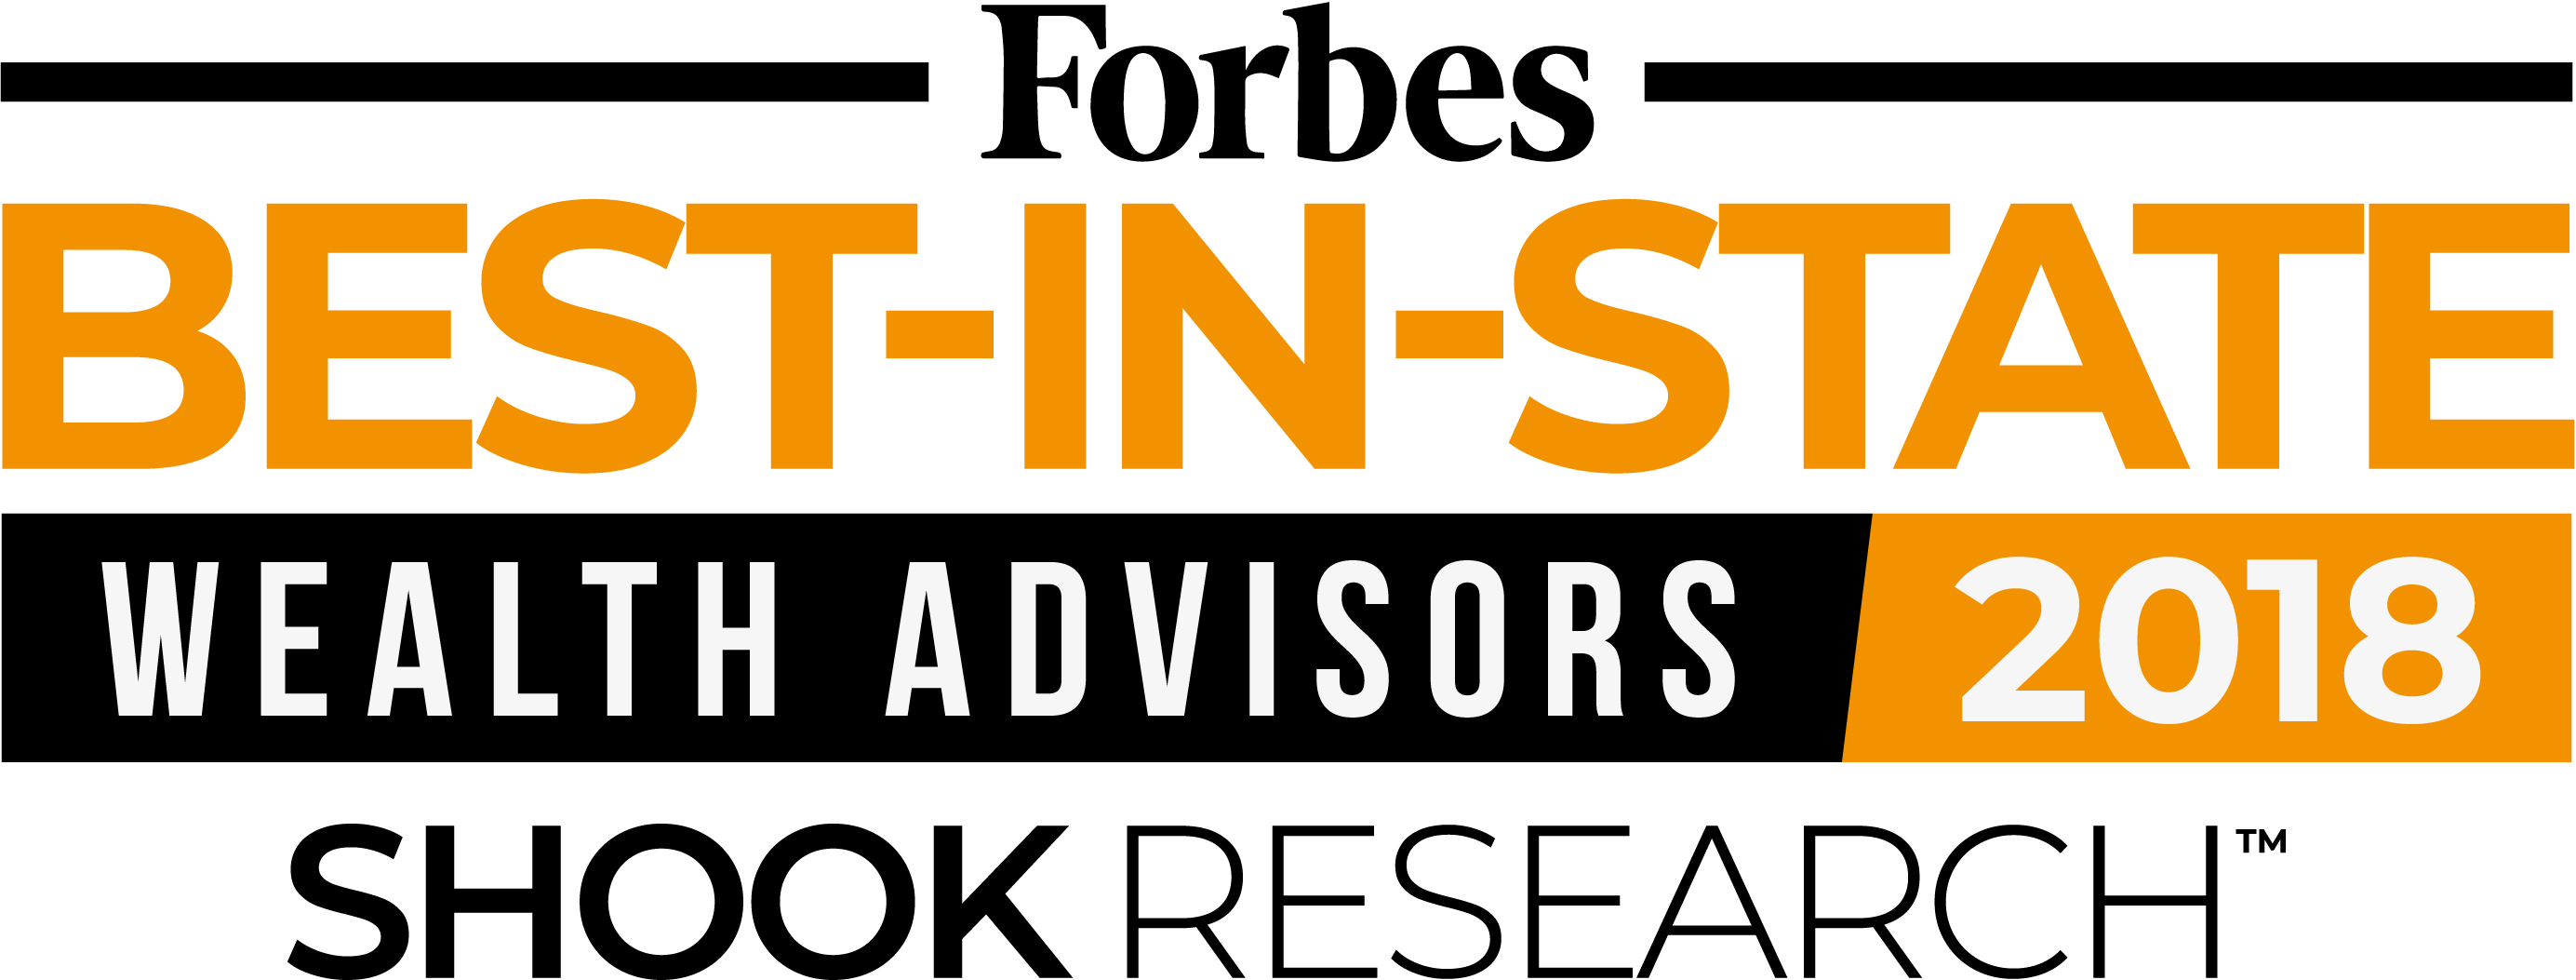 The Wise Investor Group Ranked in Top 5 Forbes' Best-In-State Advisors Thumbnail